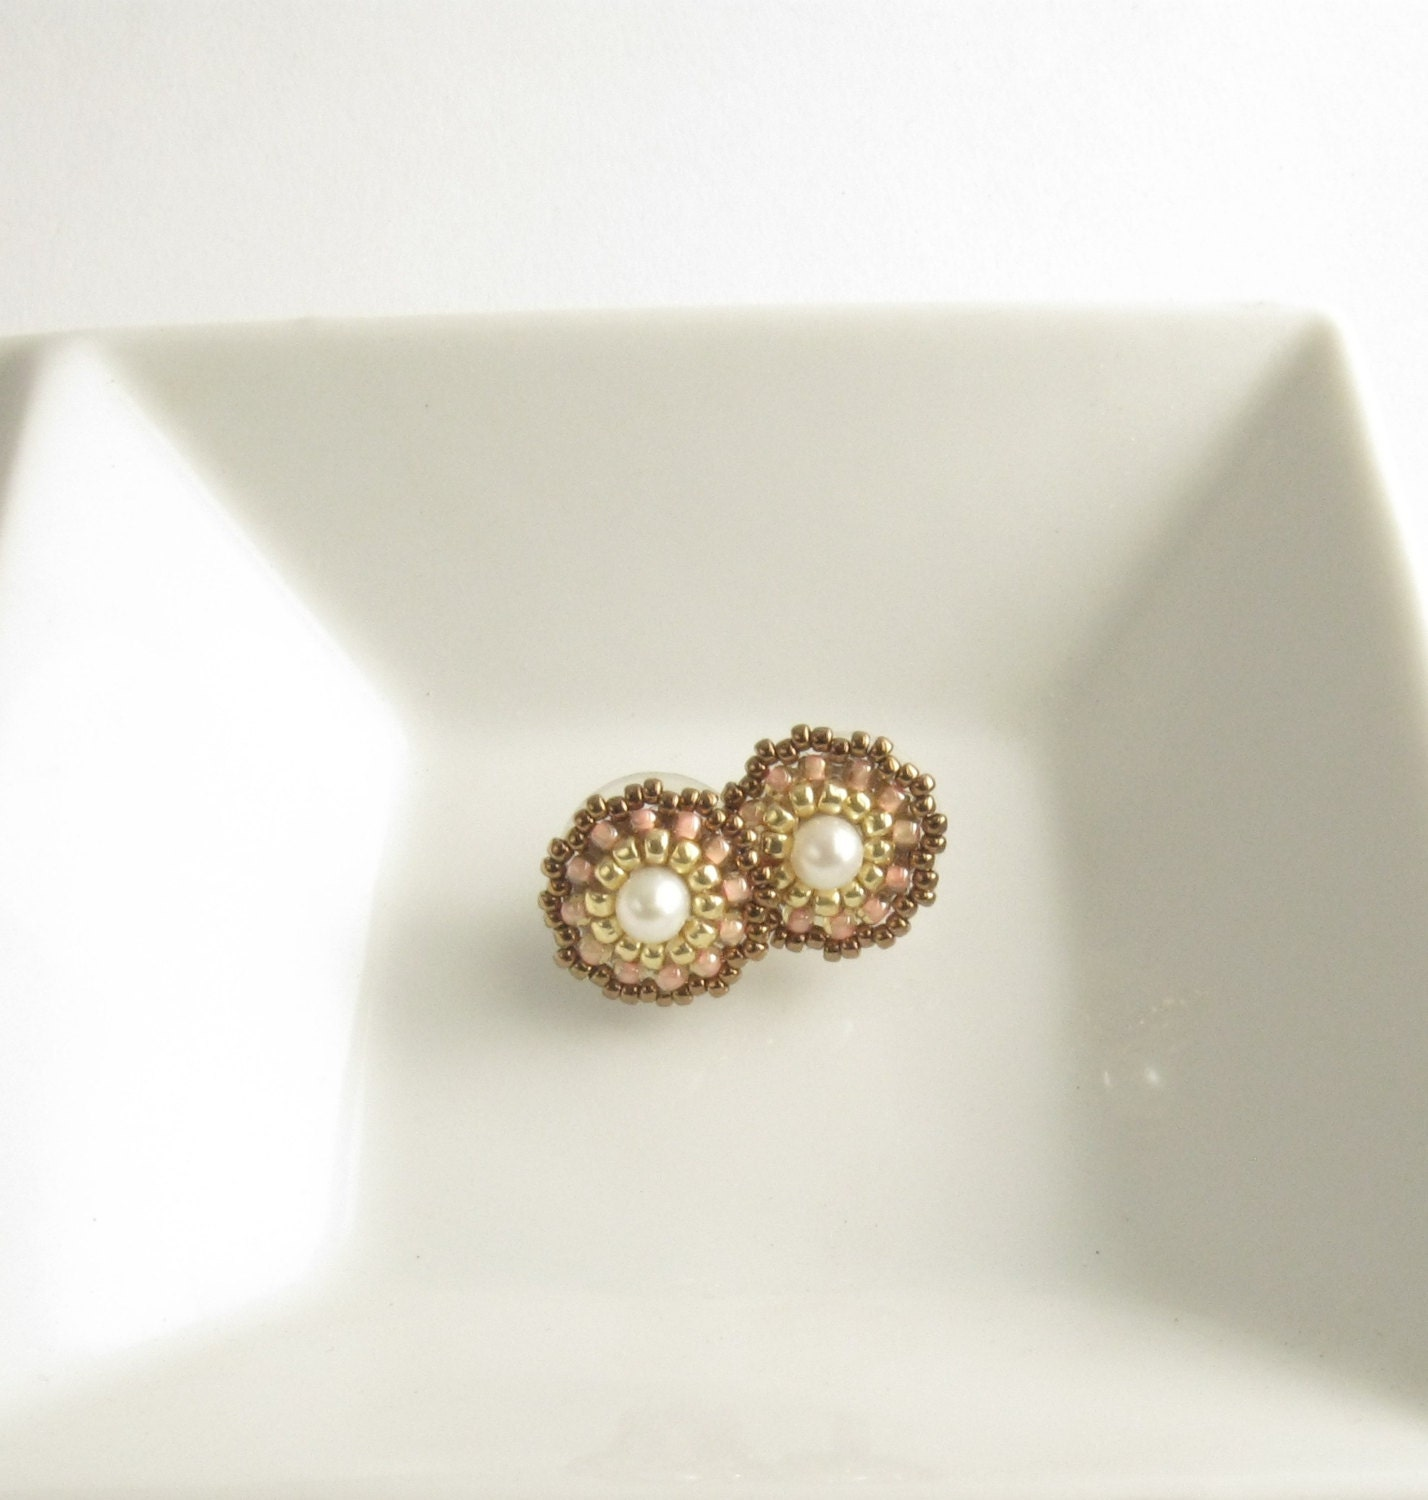 small round studs earrings, light peach pearl post earrnigs,beadwork handmade earrings, israel